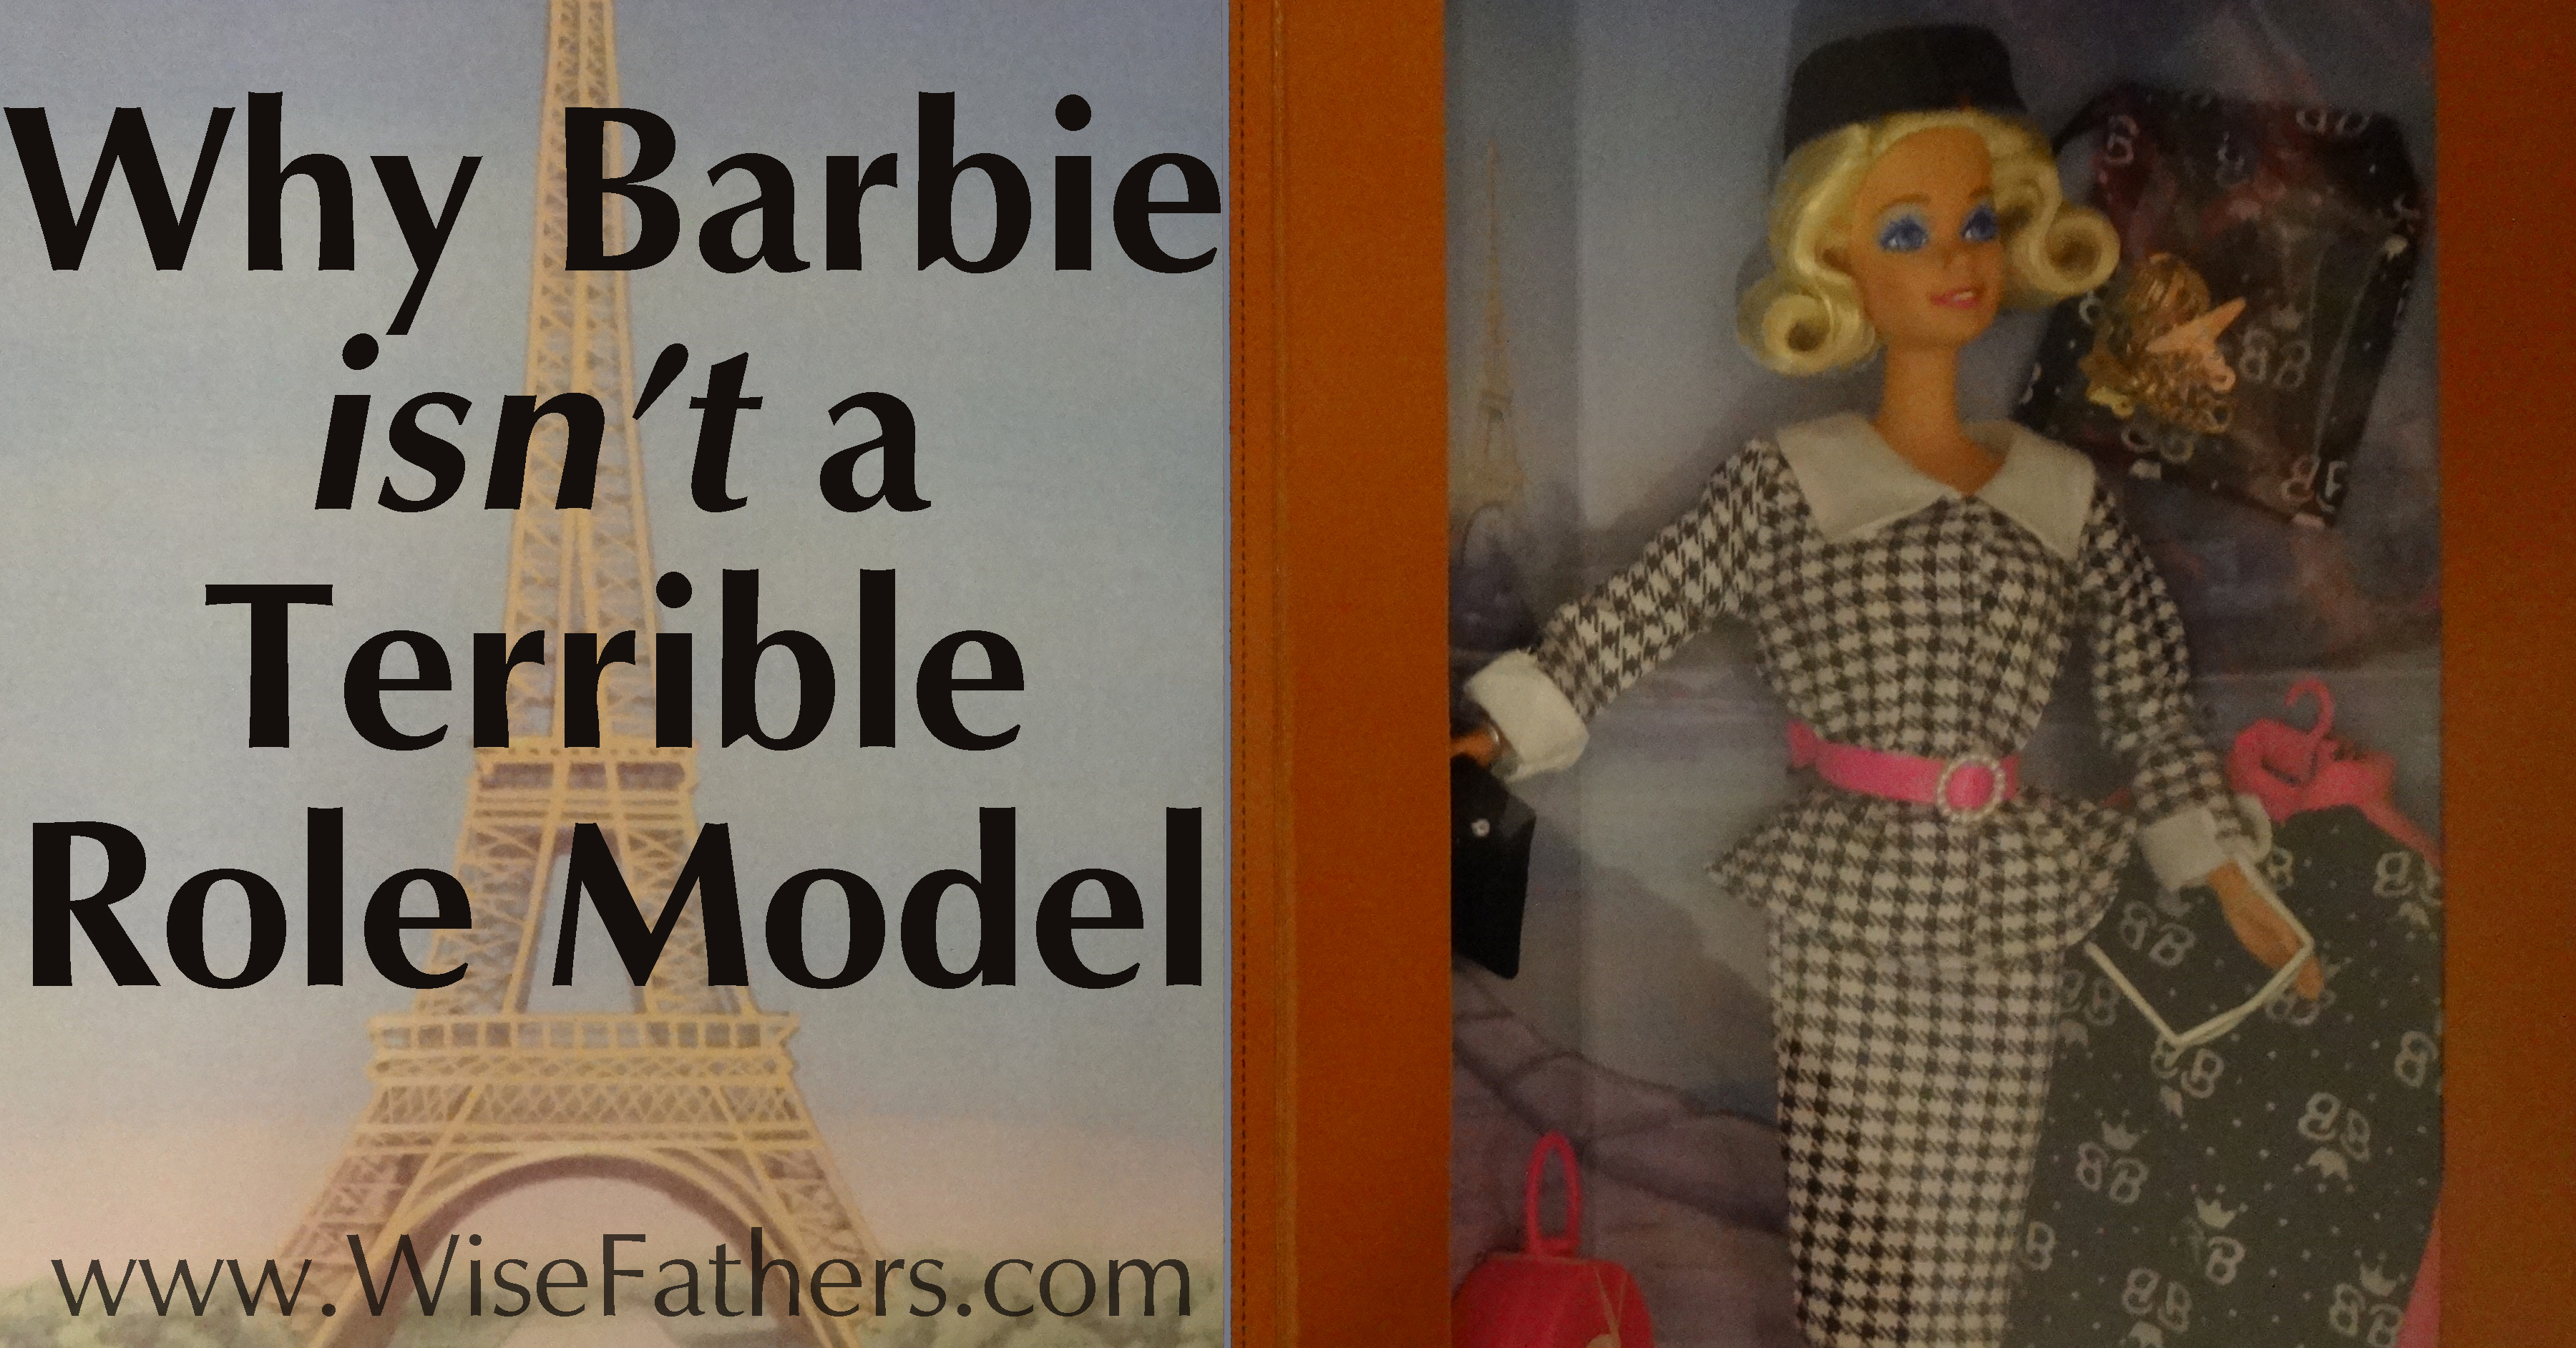 Why Barbie isn't a Terrible Role Model